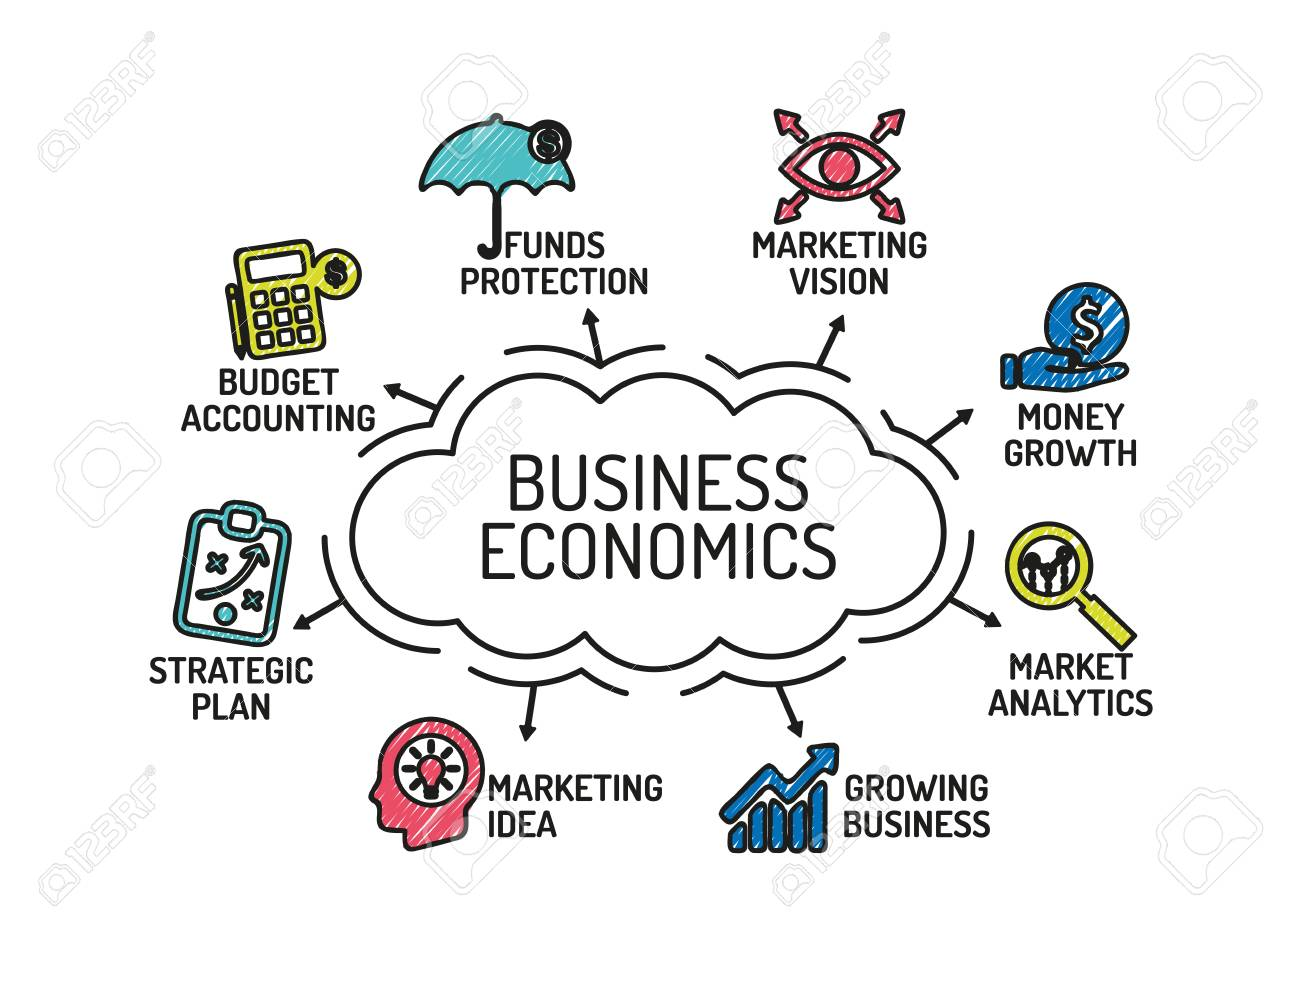 Business Economics chart with keywords and icons. Sketch